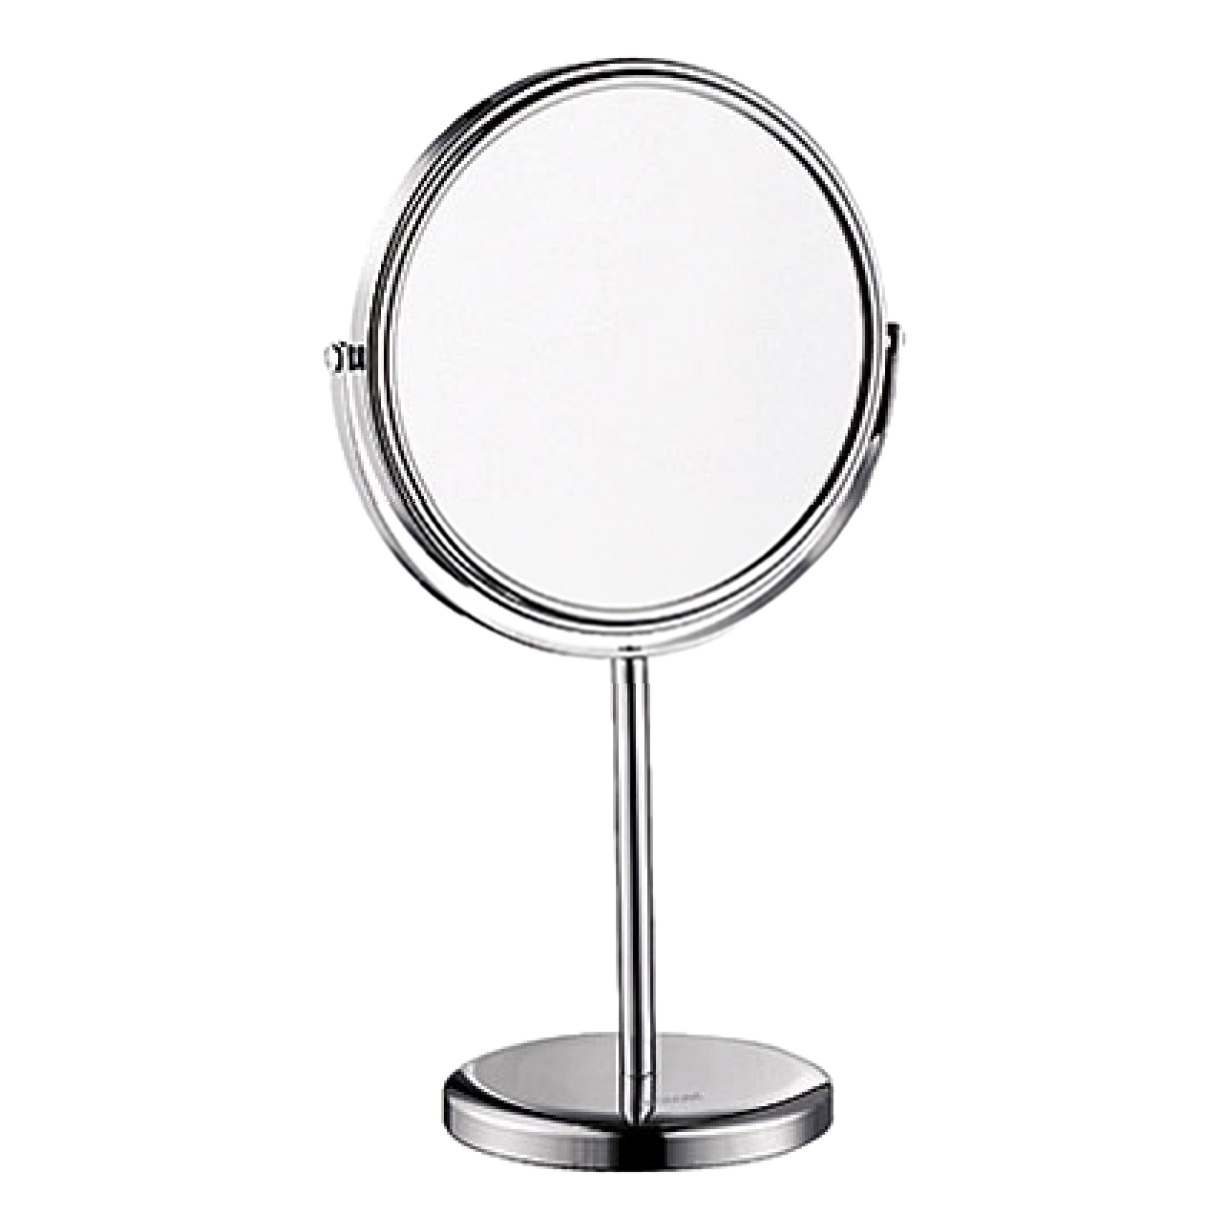 Magnifying mirror WasserKRAFT K-1003 20 led light touch screen make up mirror cosmetic stand mirror 10x magnifying black white